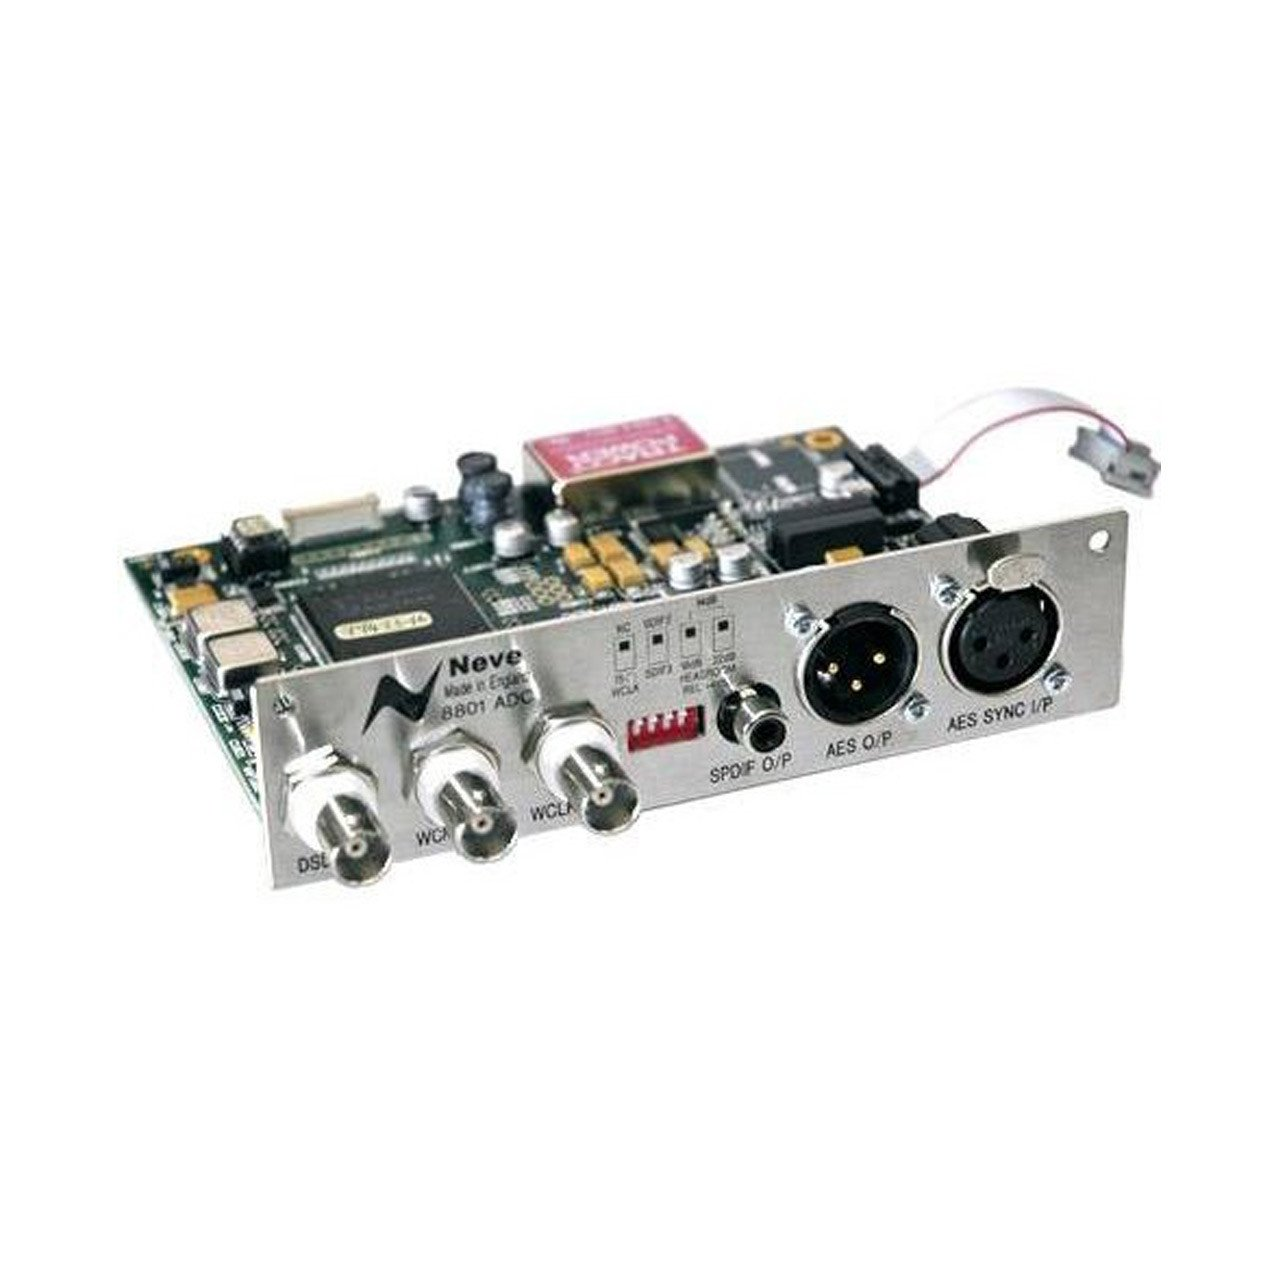 Outboard Accessories - Neve AMS 8801 ADC Expansion Card